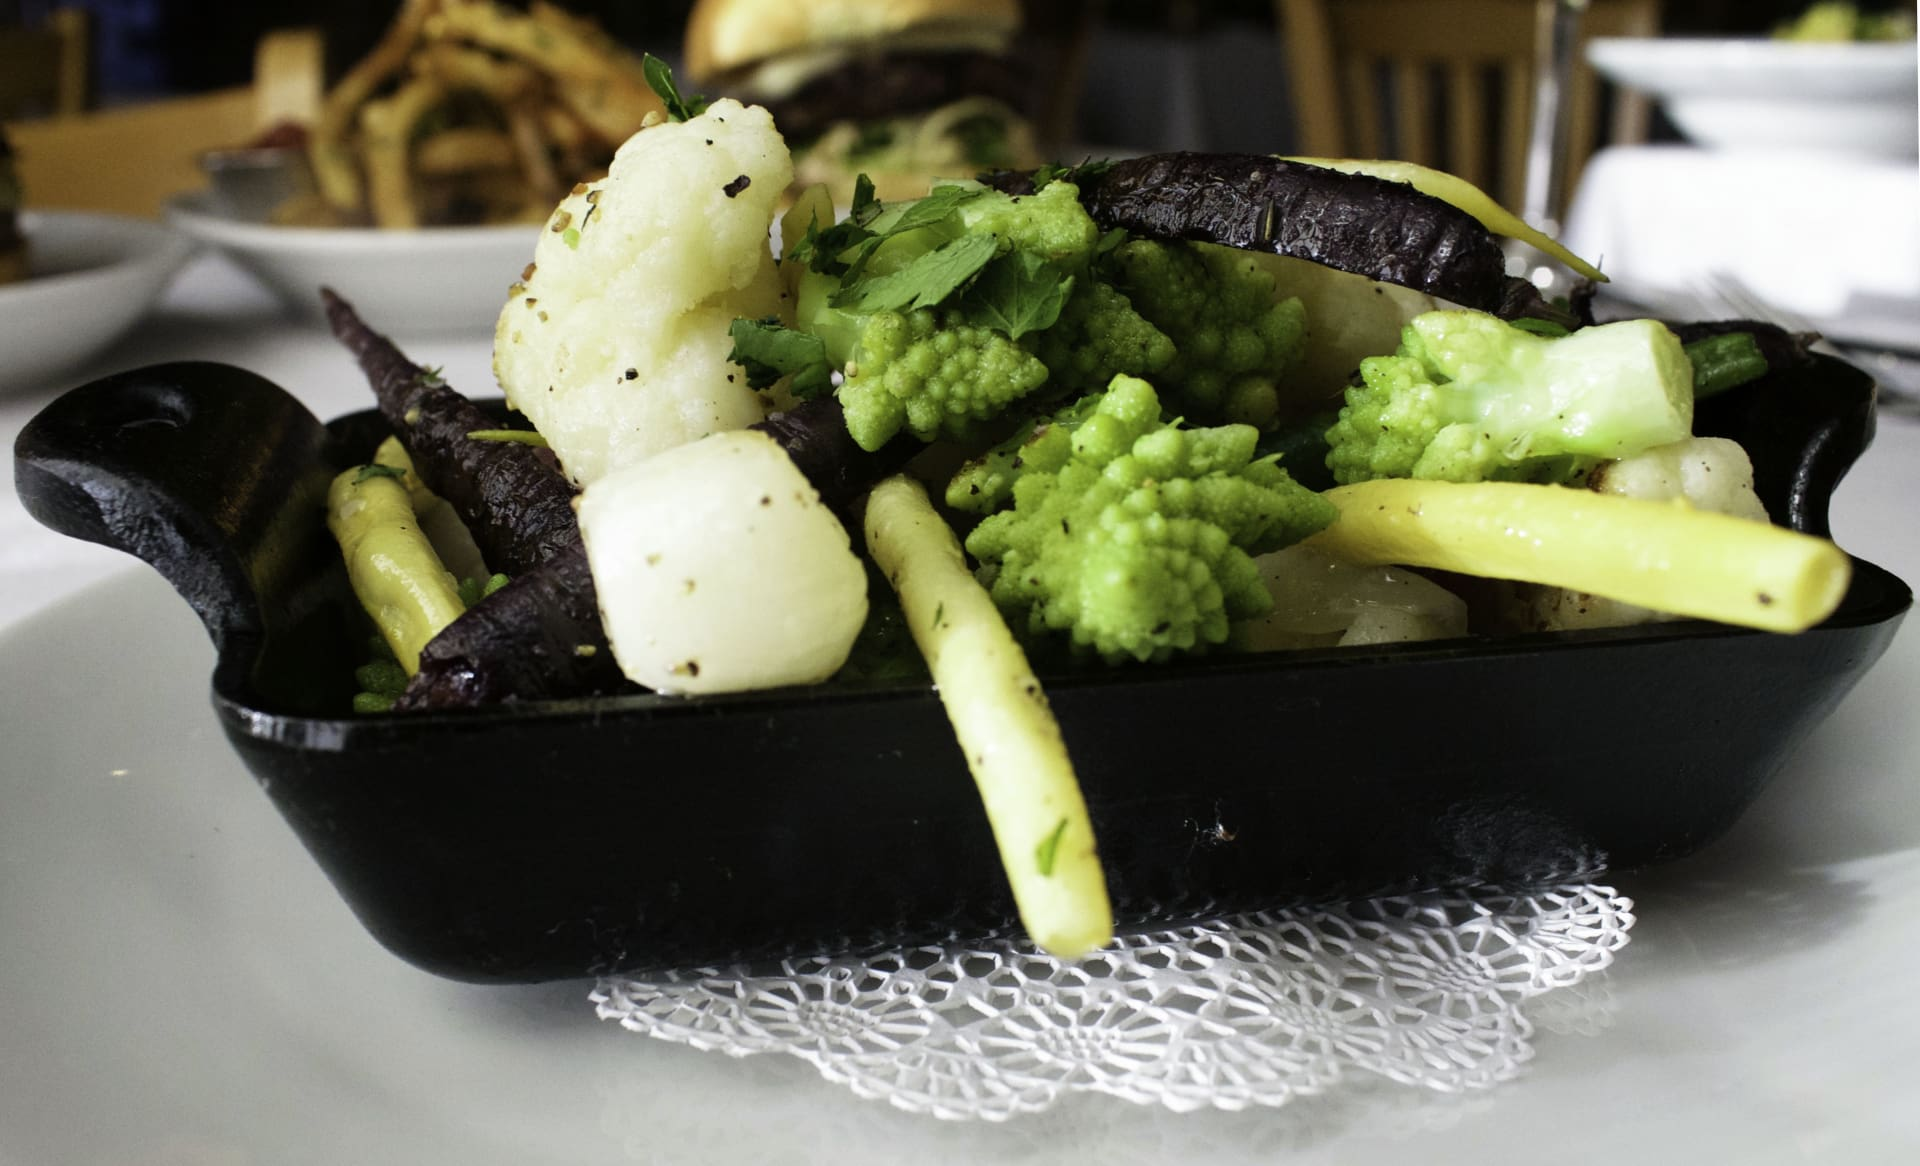 Skillet of Seasonal Vegetables